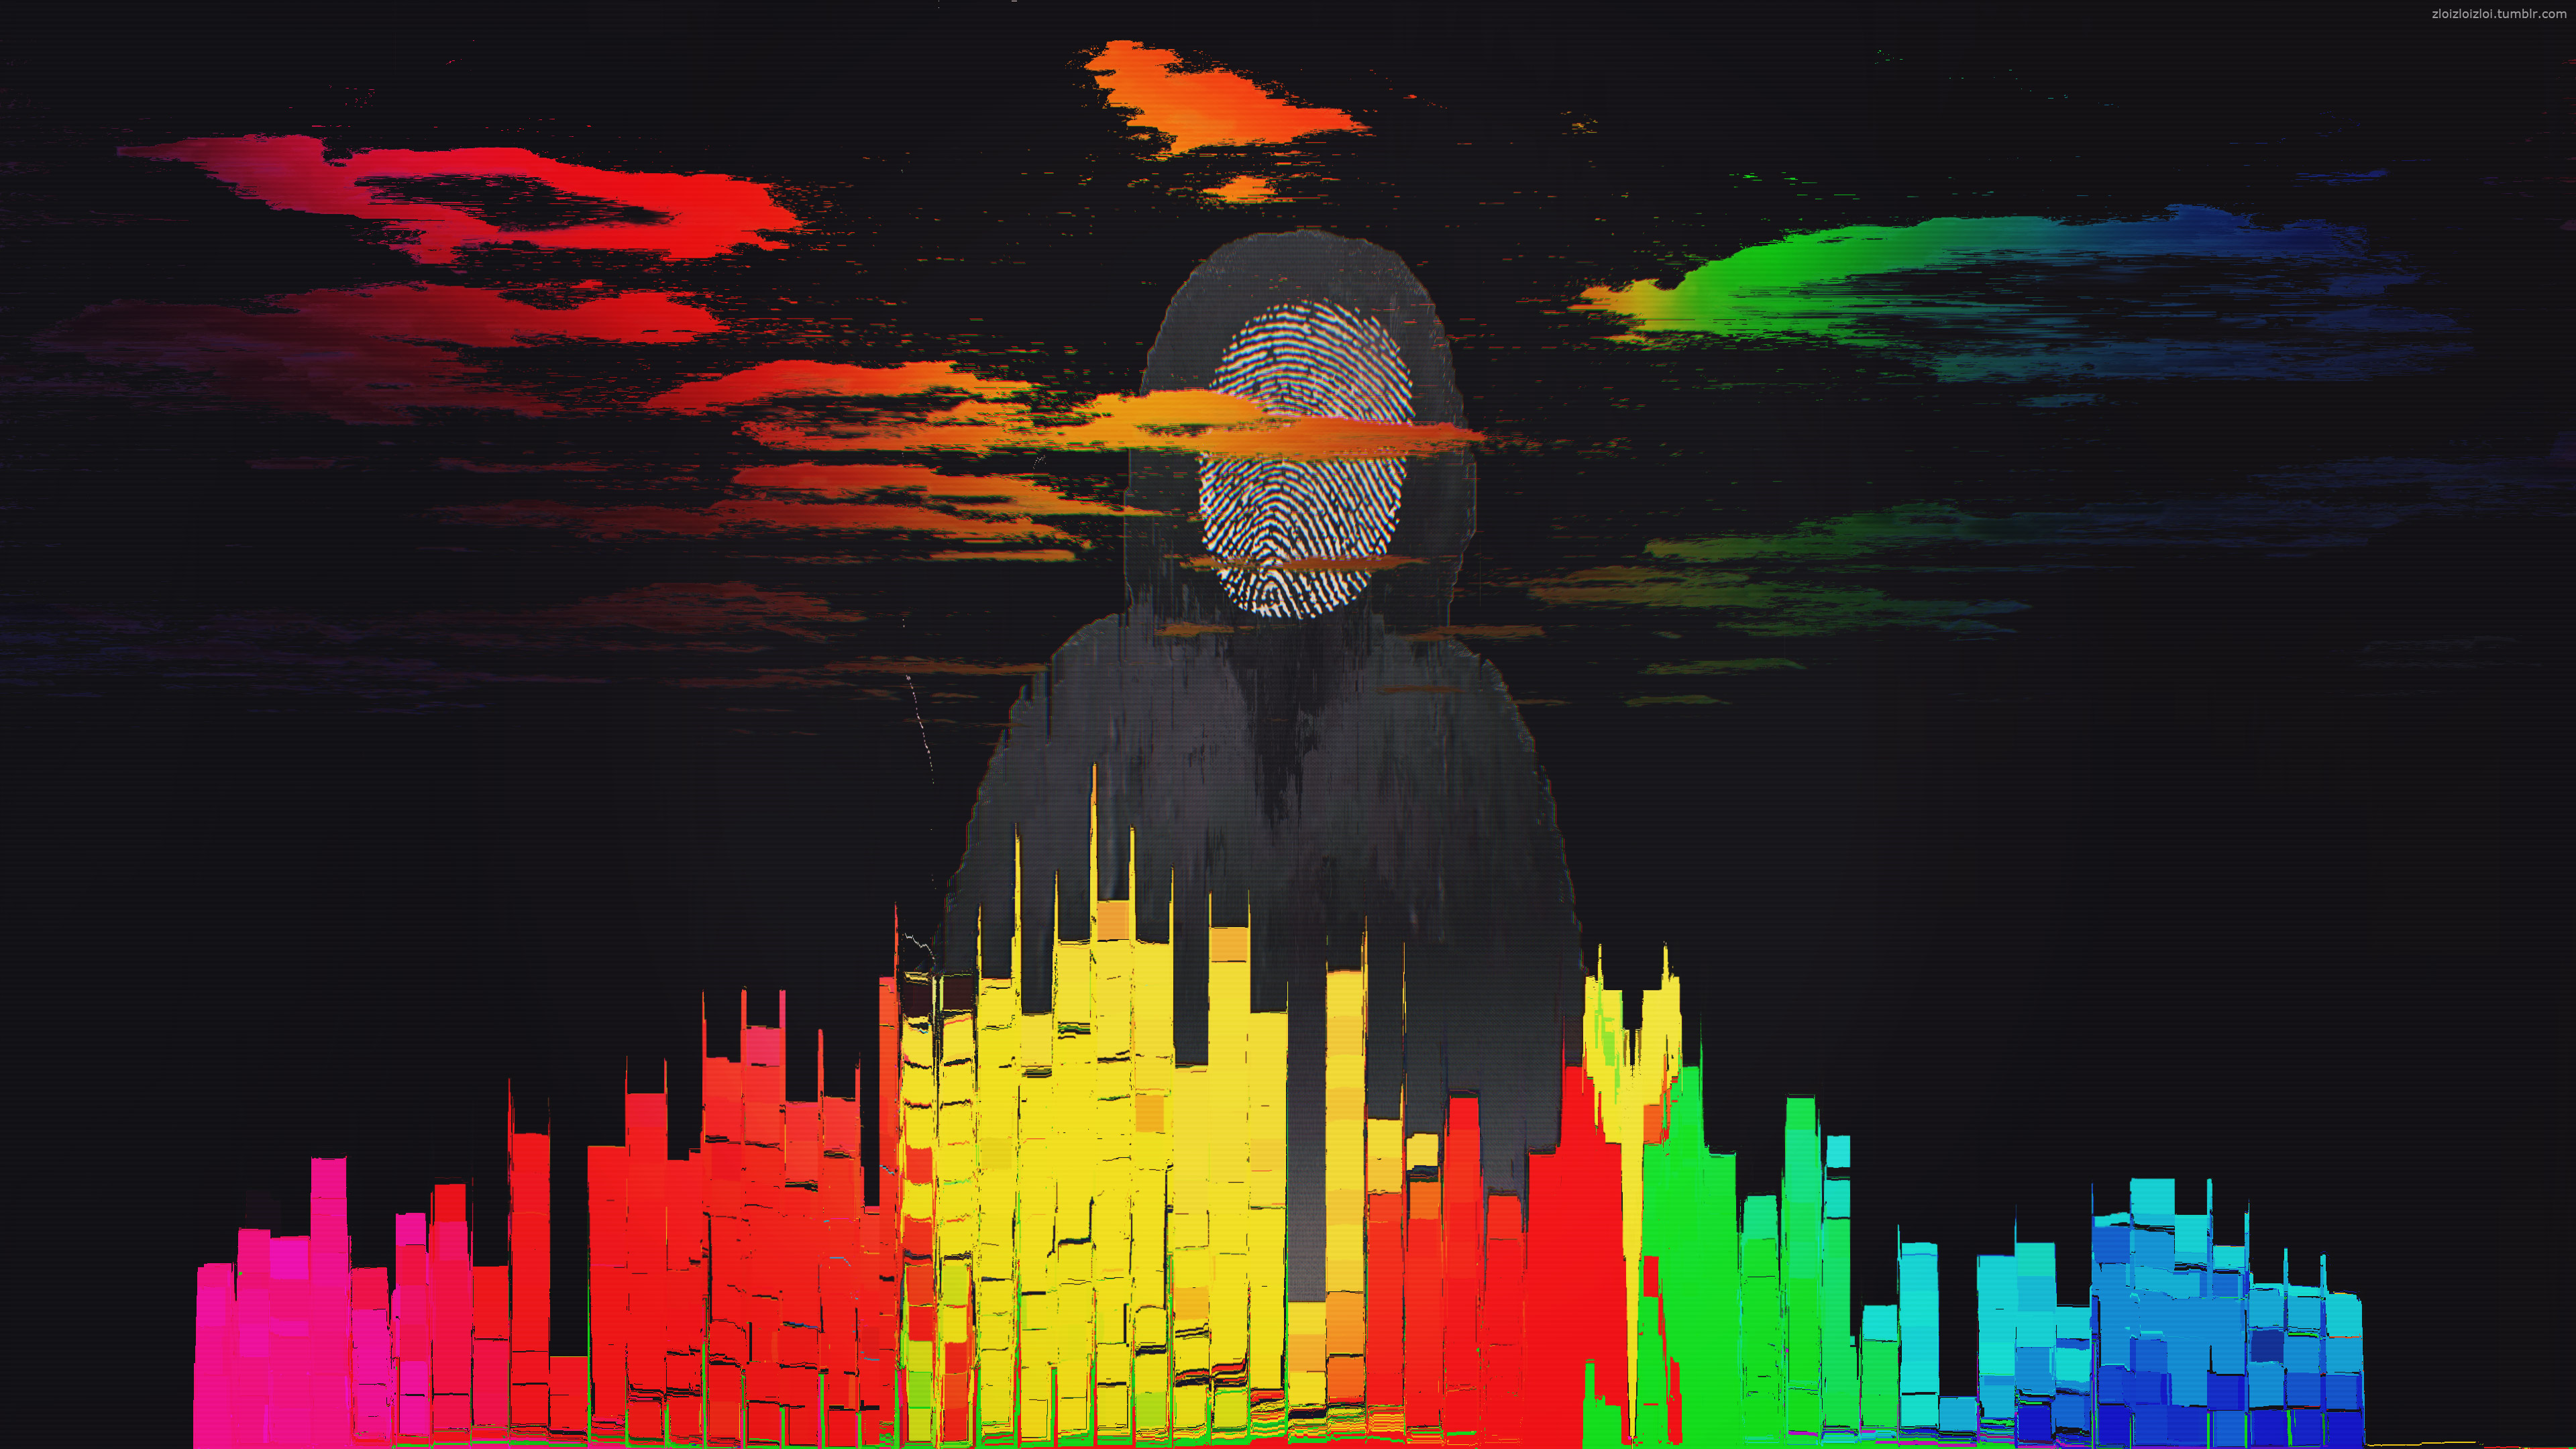 Glitch Art Abstract City Hd Abstract 4k Wallpapers Images